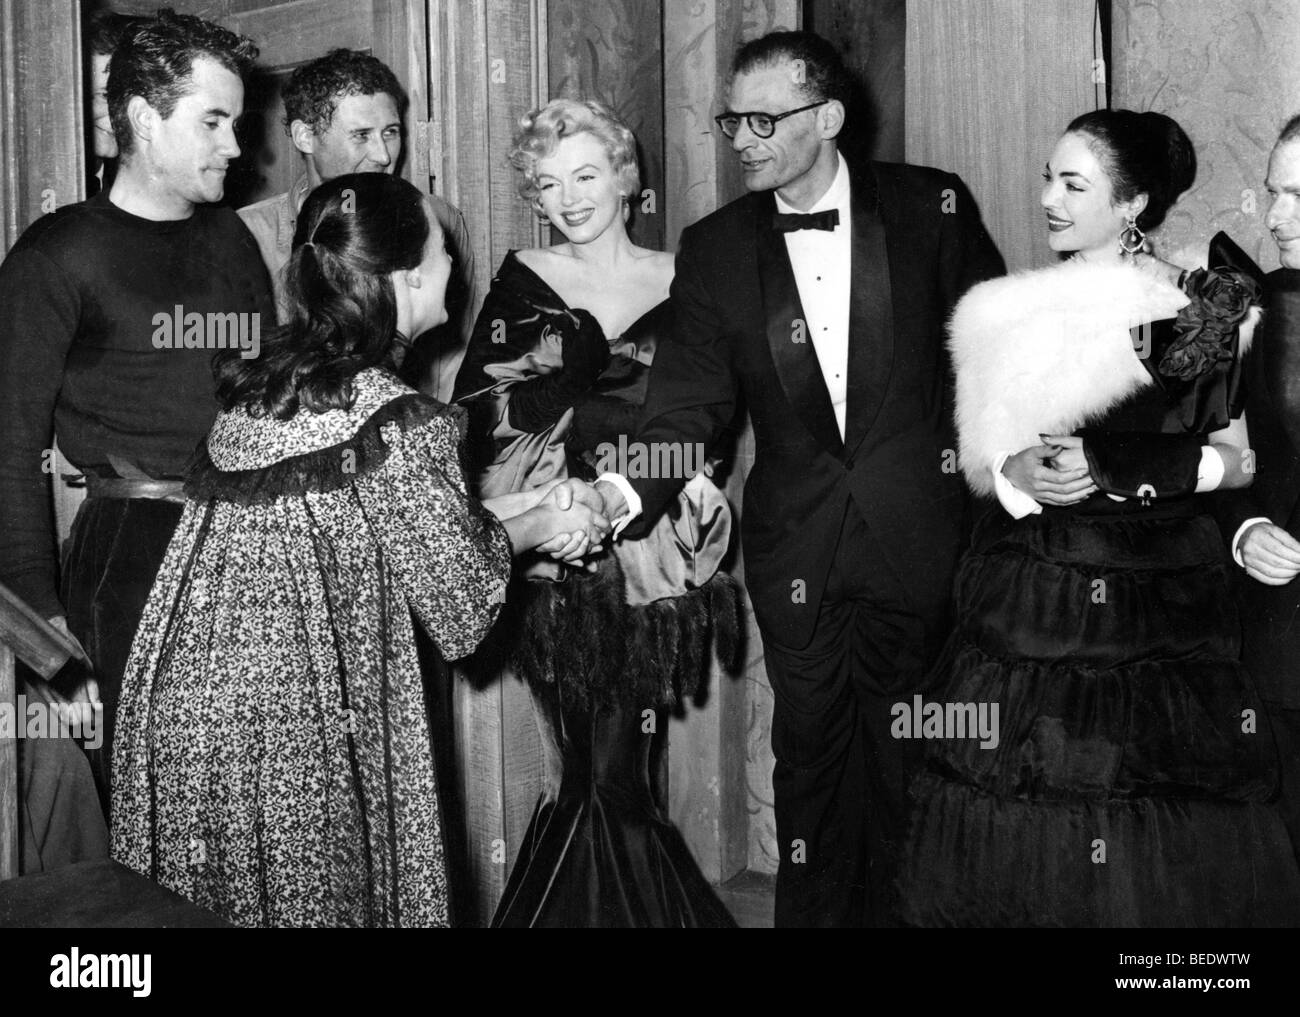 Marilyn Monroe and husband Arthur Miller greeting friends - Stock Image